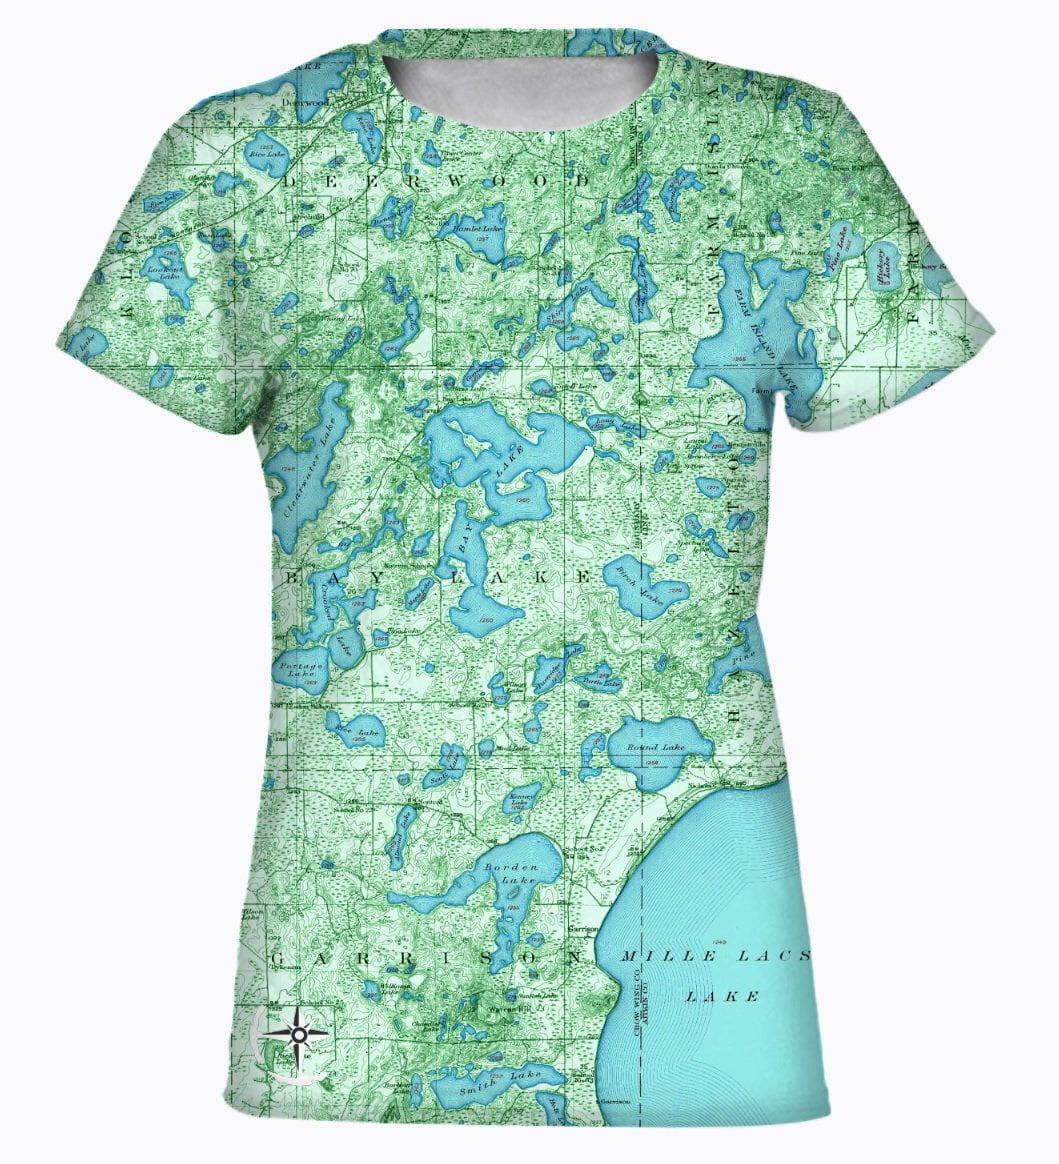 Bay Lake Women's T-Shirt